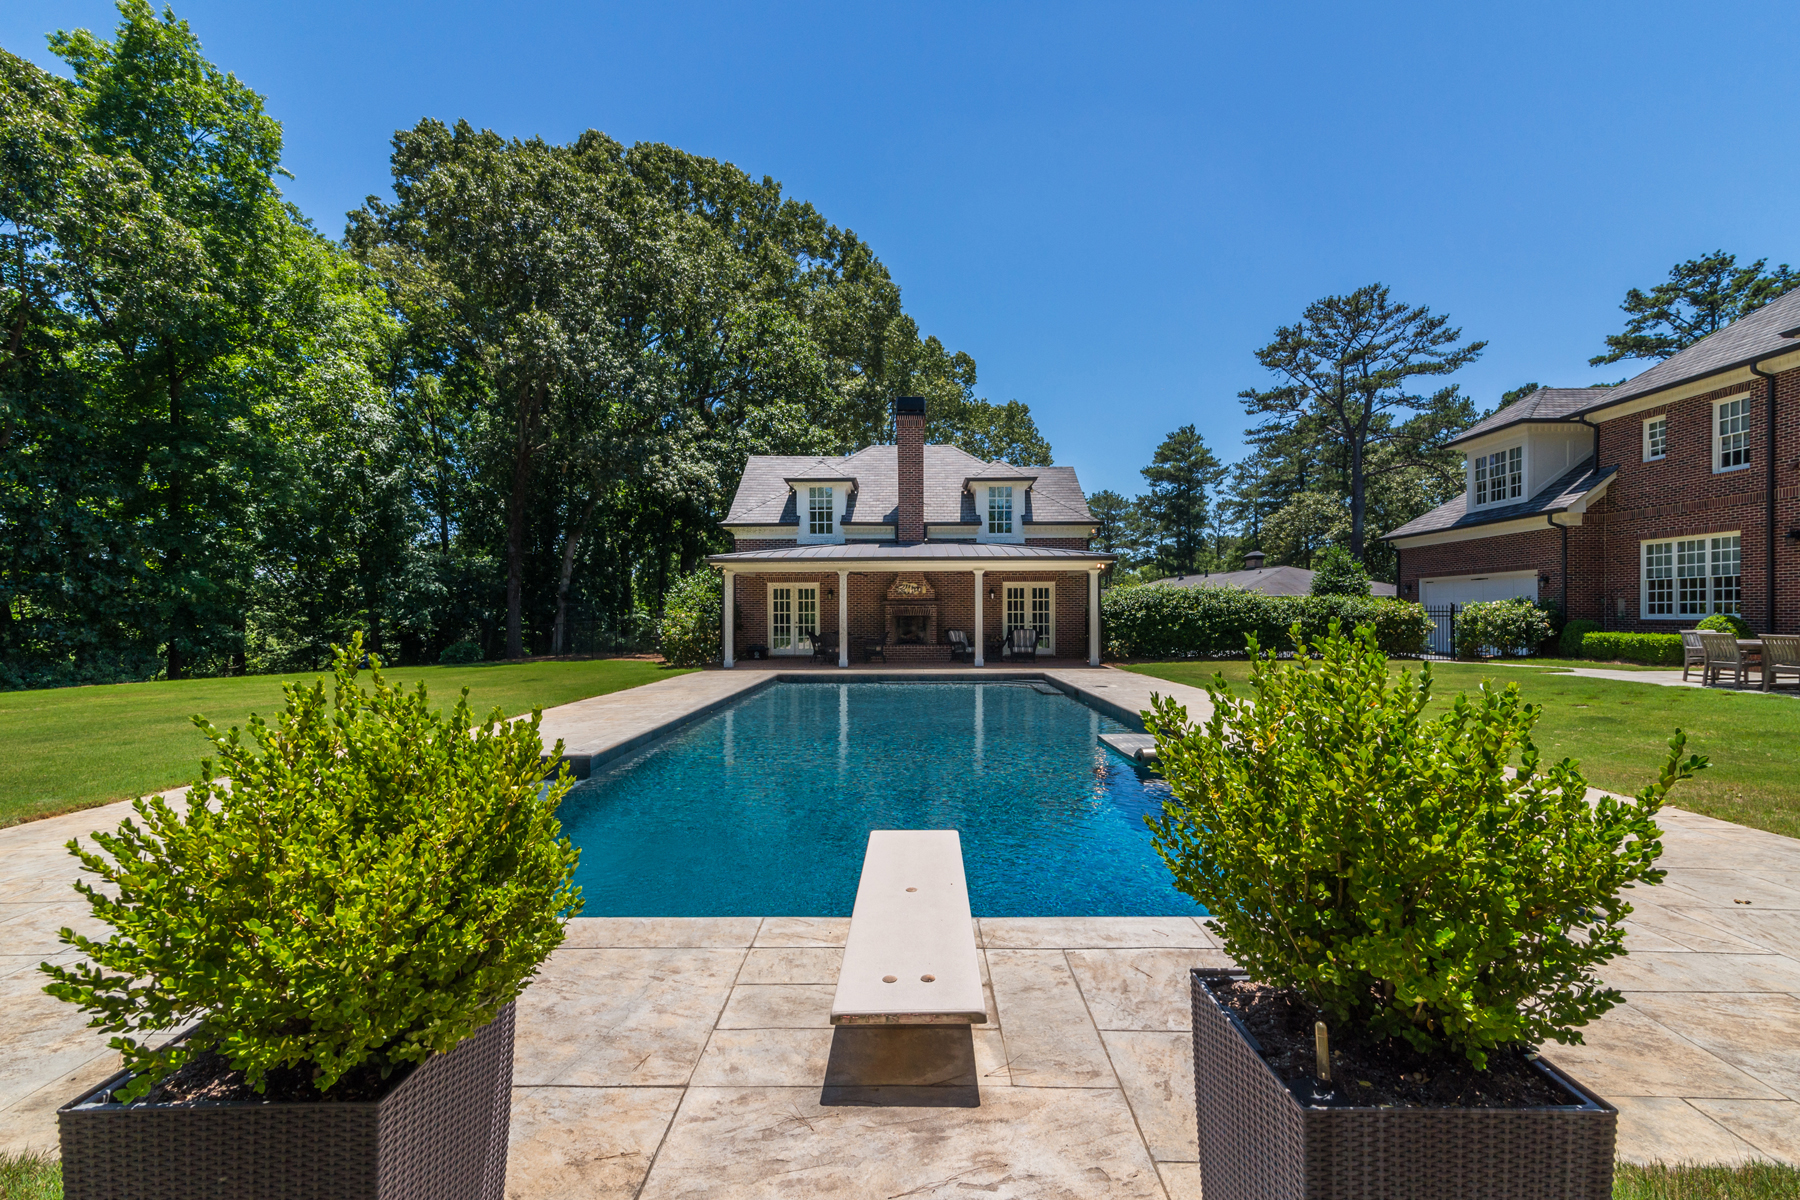 Additional photo for property listing at Beautifully Appointed Home In Buckhead 2761 Ridgewood Road Atlanta, Geórgia 30327 Estados Unidos